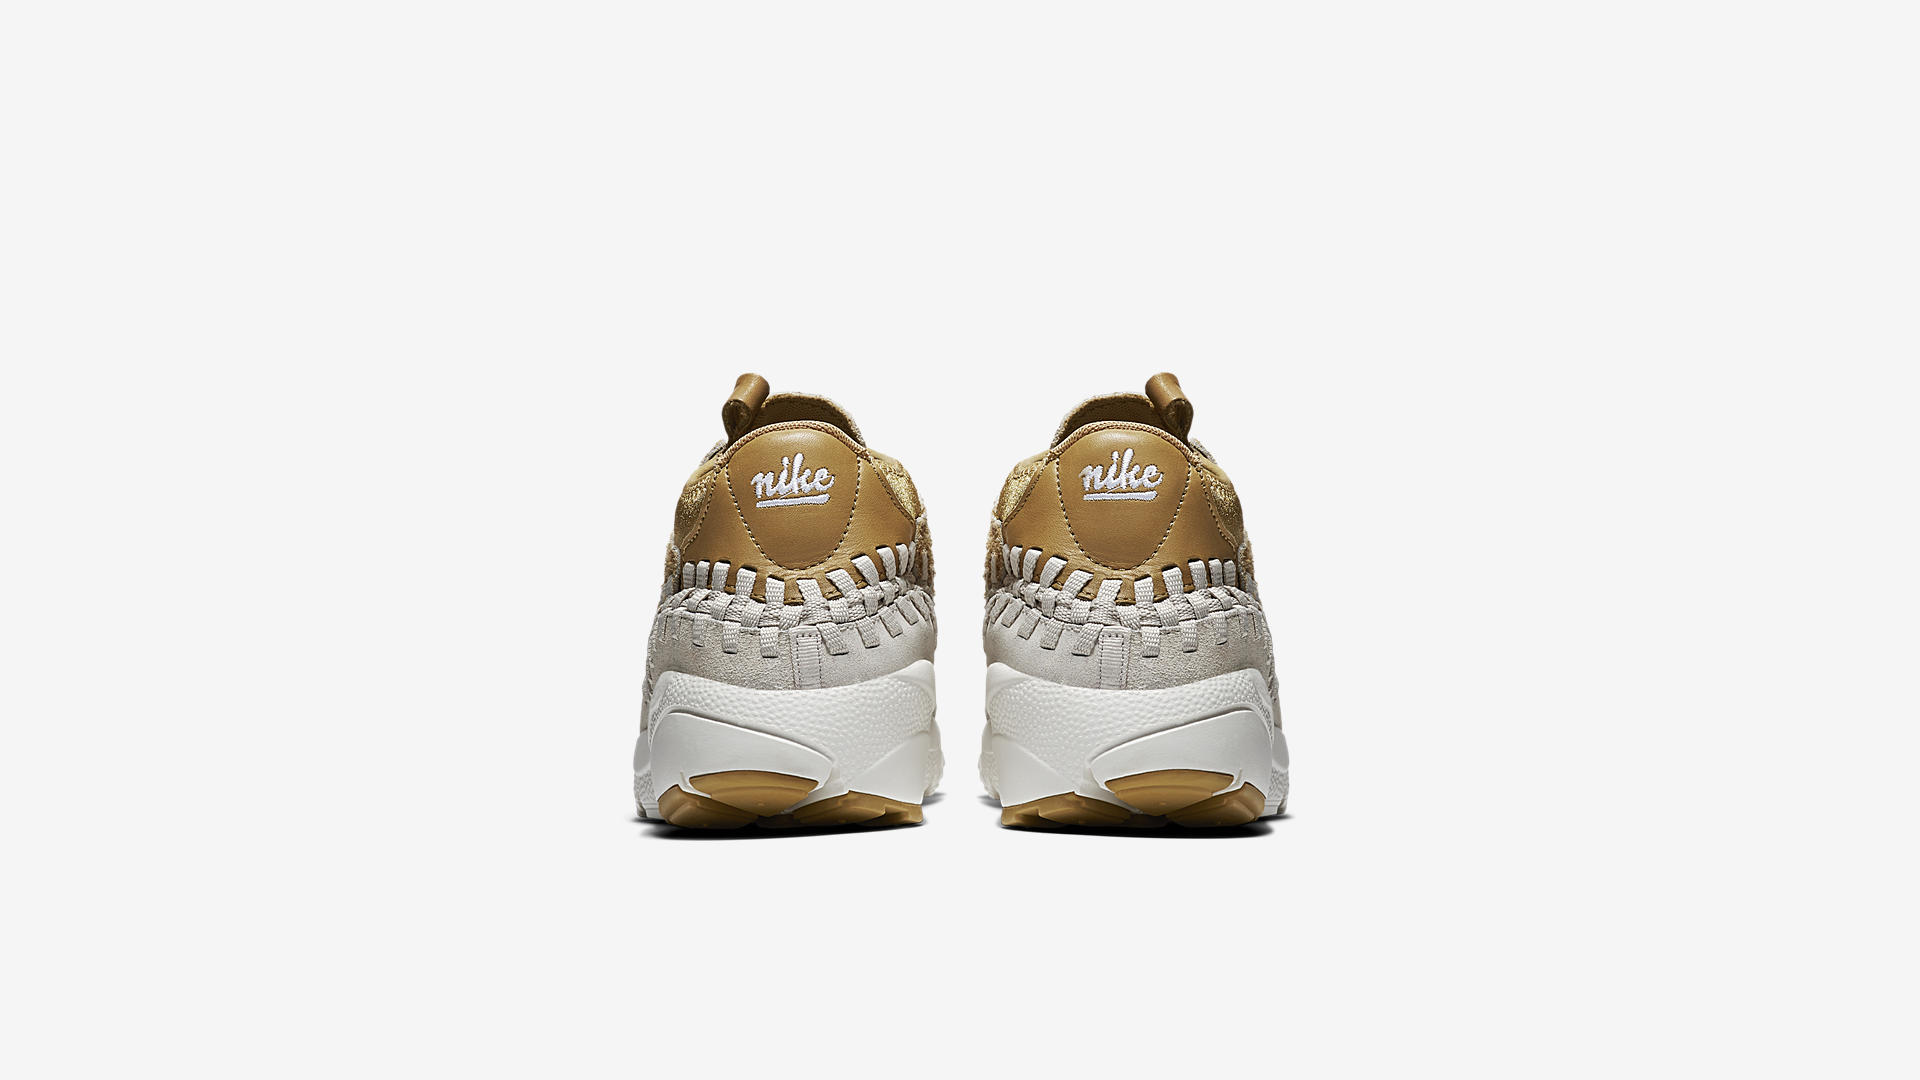 Nike Air Footscape Woven Chukka Flat Gold 913929 700 2